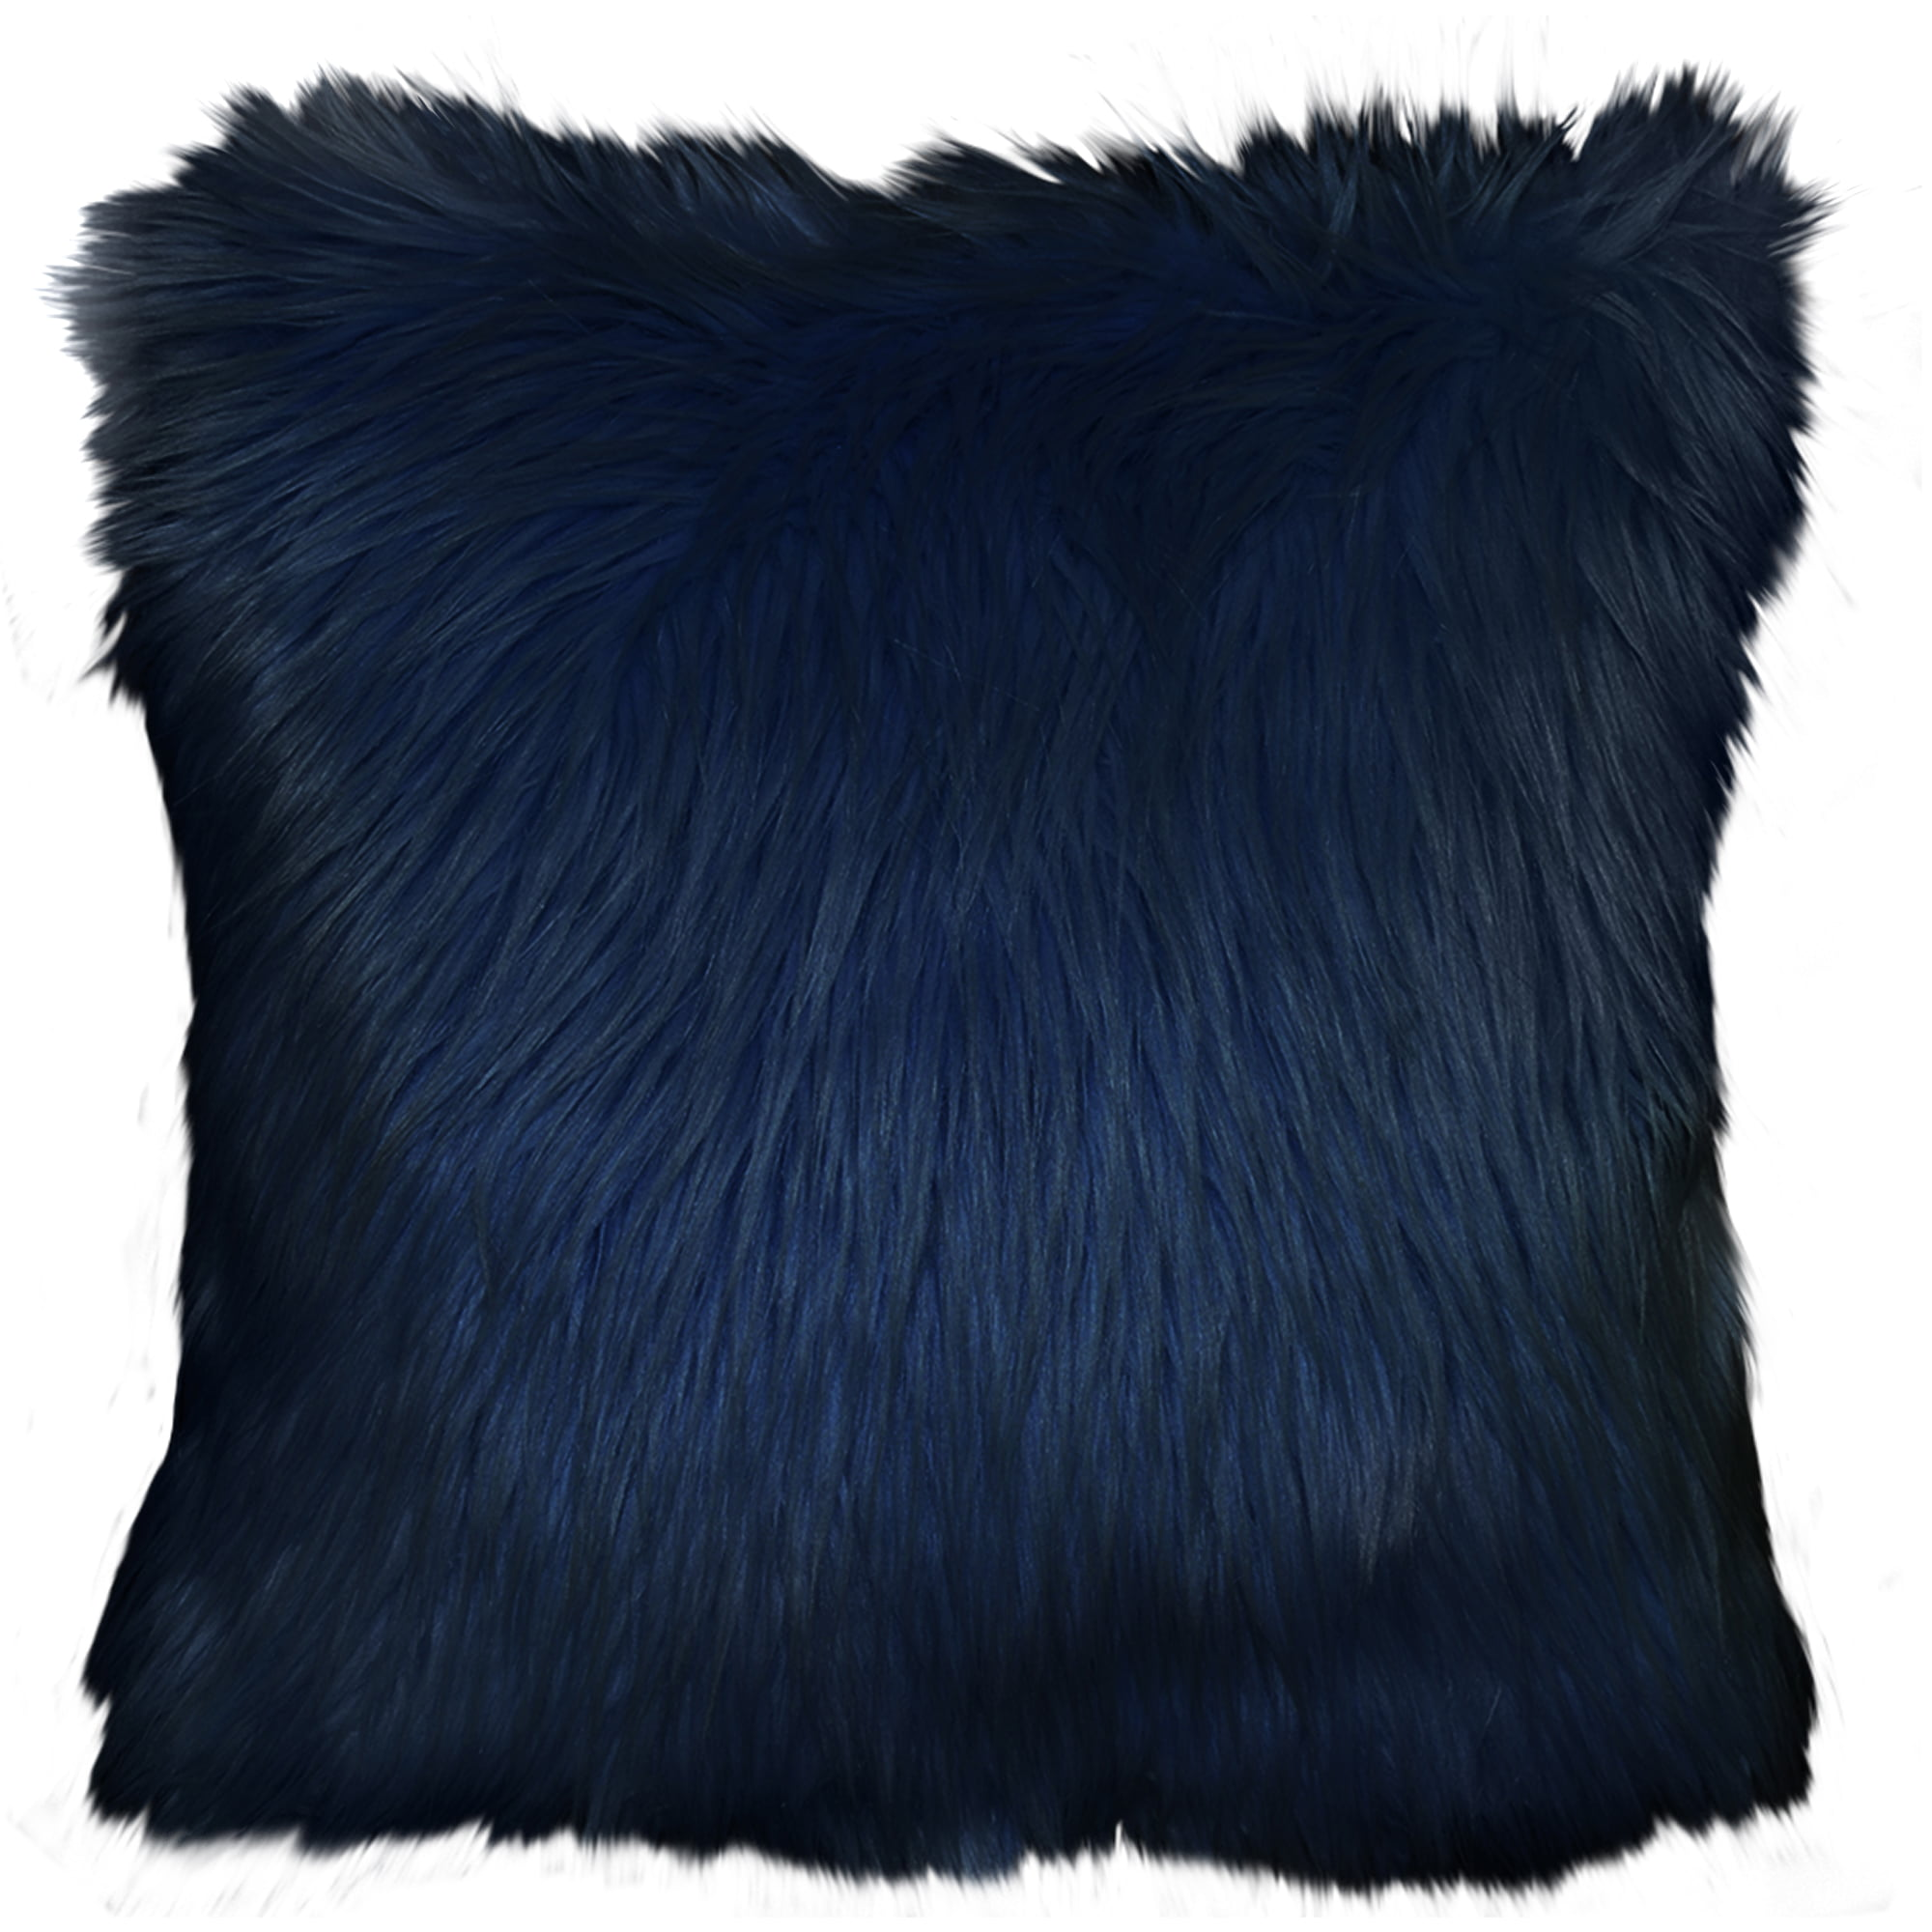 faux fur pillow throw authier shaggy decor pinterest pin